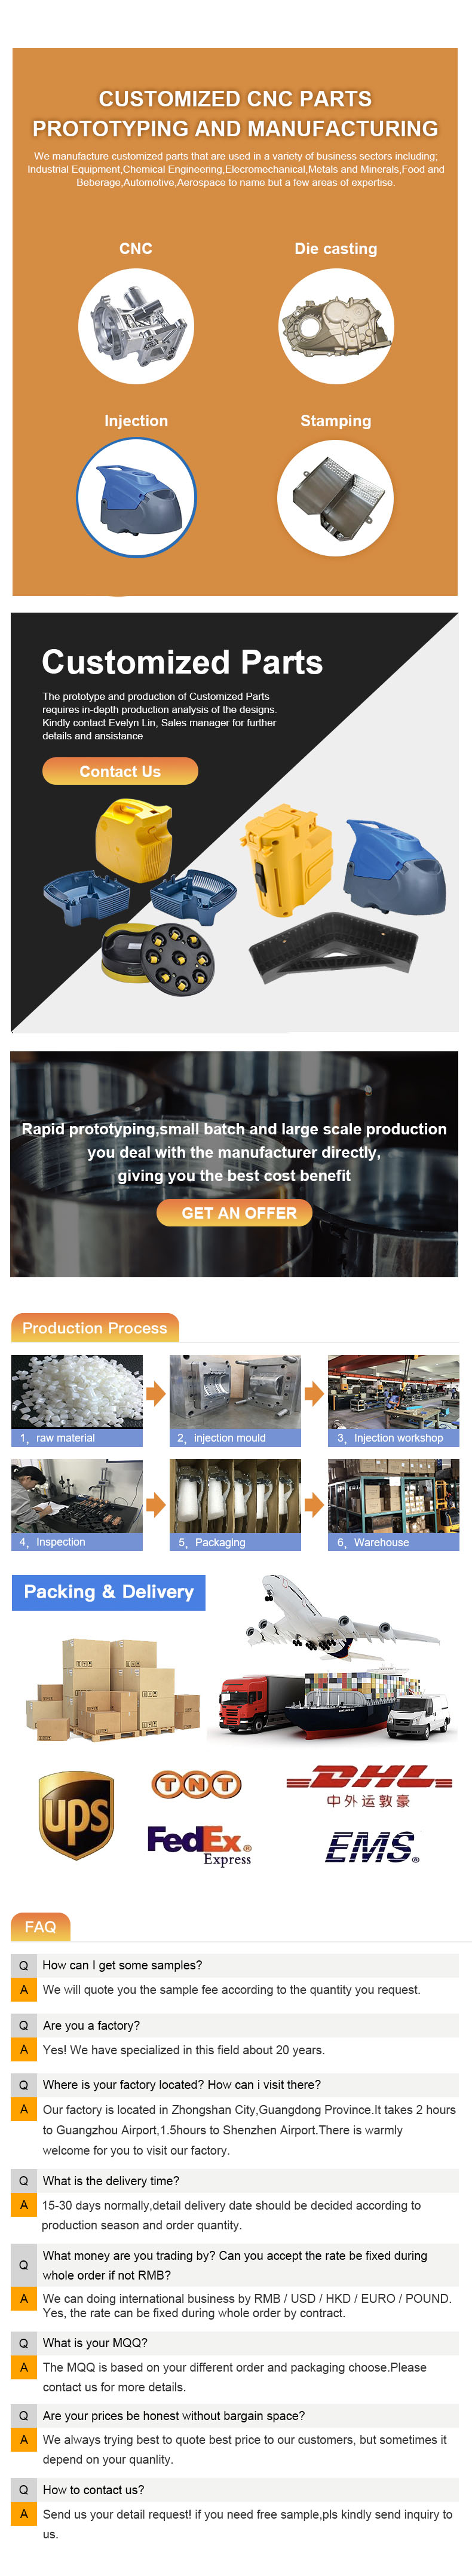 plastic injection parts,CNC MACHINING PARTS,PRECISION CNC MACHINING PARTS,CNC ALUMINUM PARTS,Machined Products,CNC Machined Products,BoYang Hardware Products